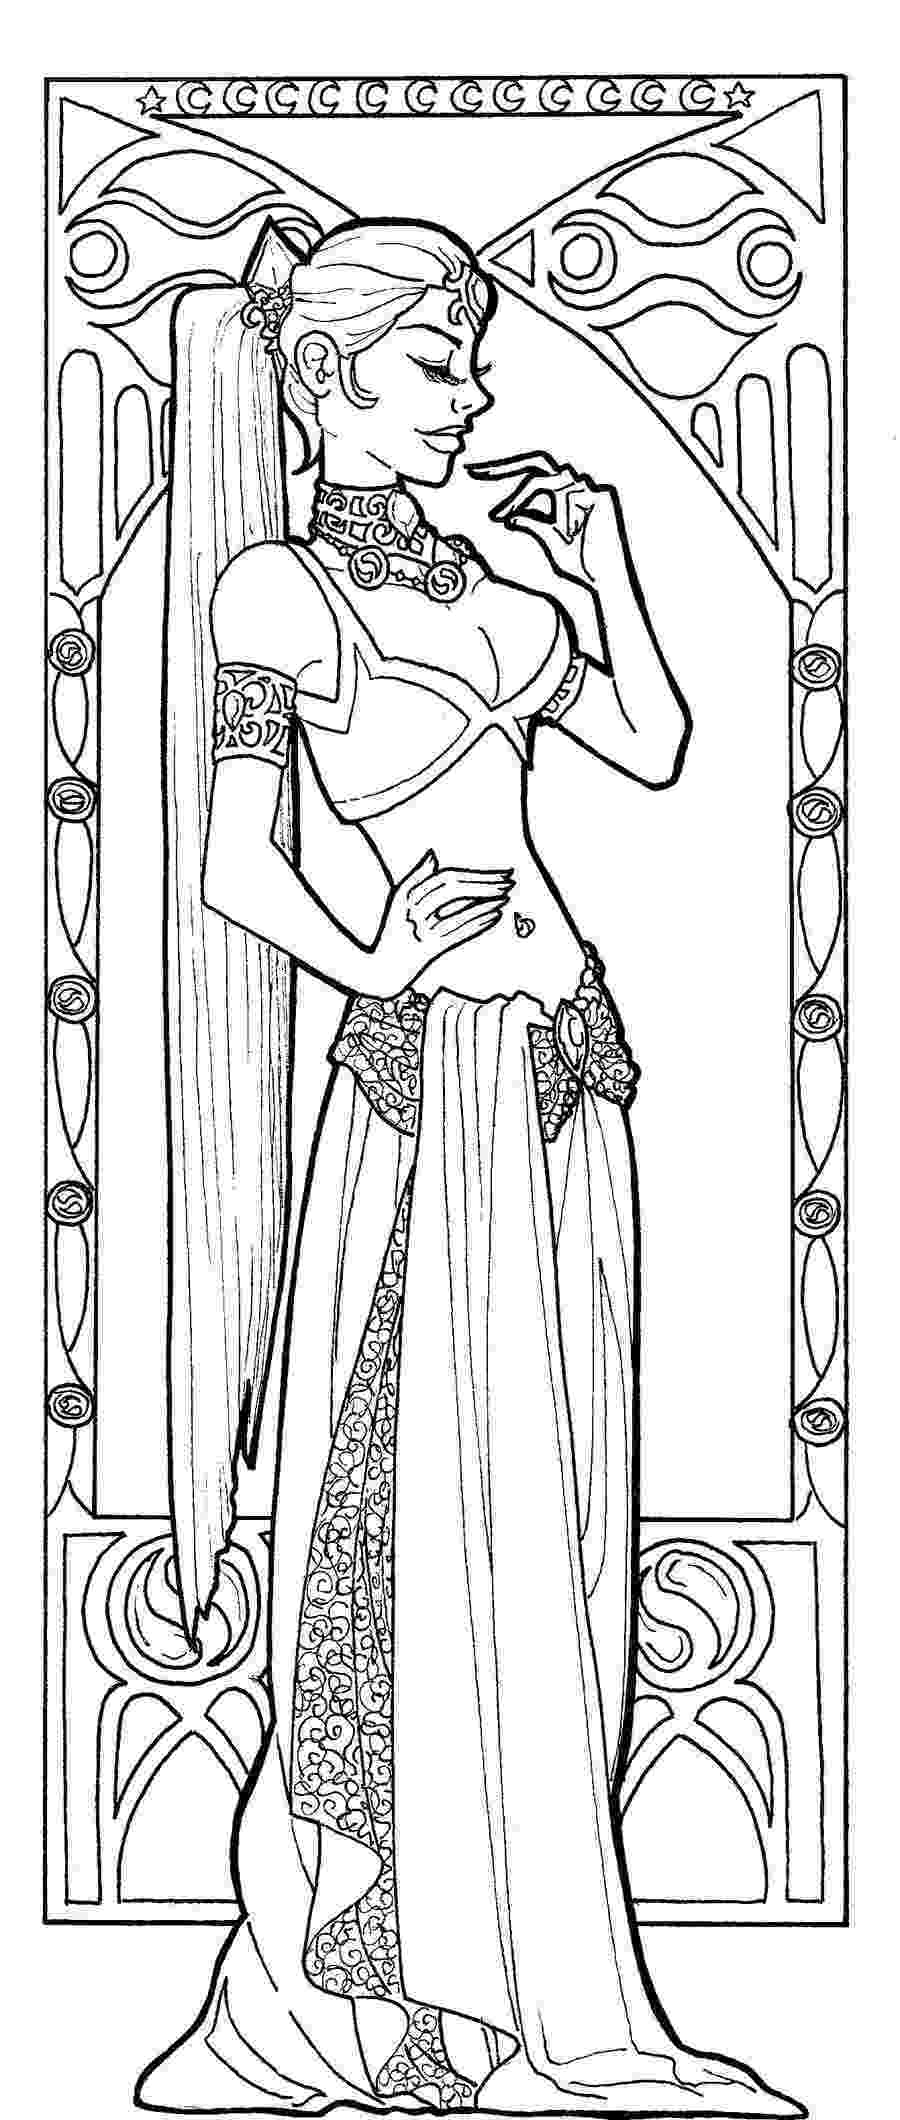 art nouveau coloring book online spring by alfons mucha coloring page free printable online book coloring nouveau art